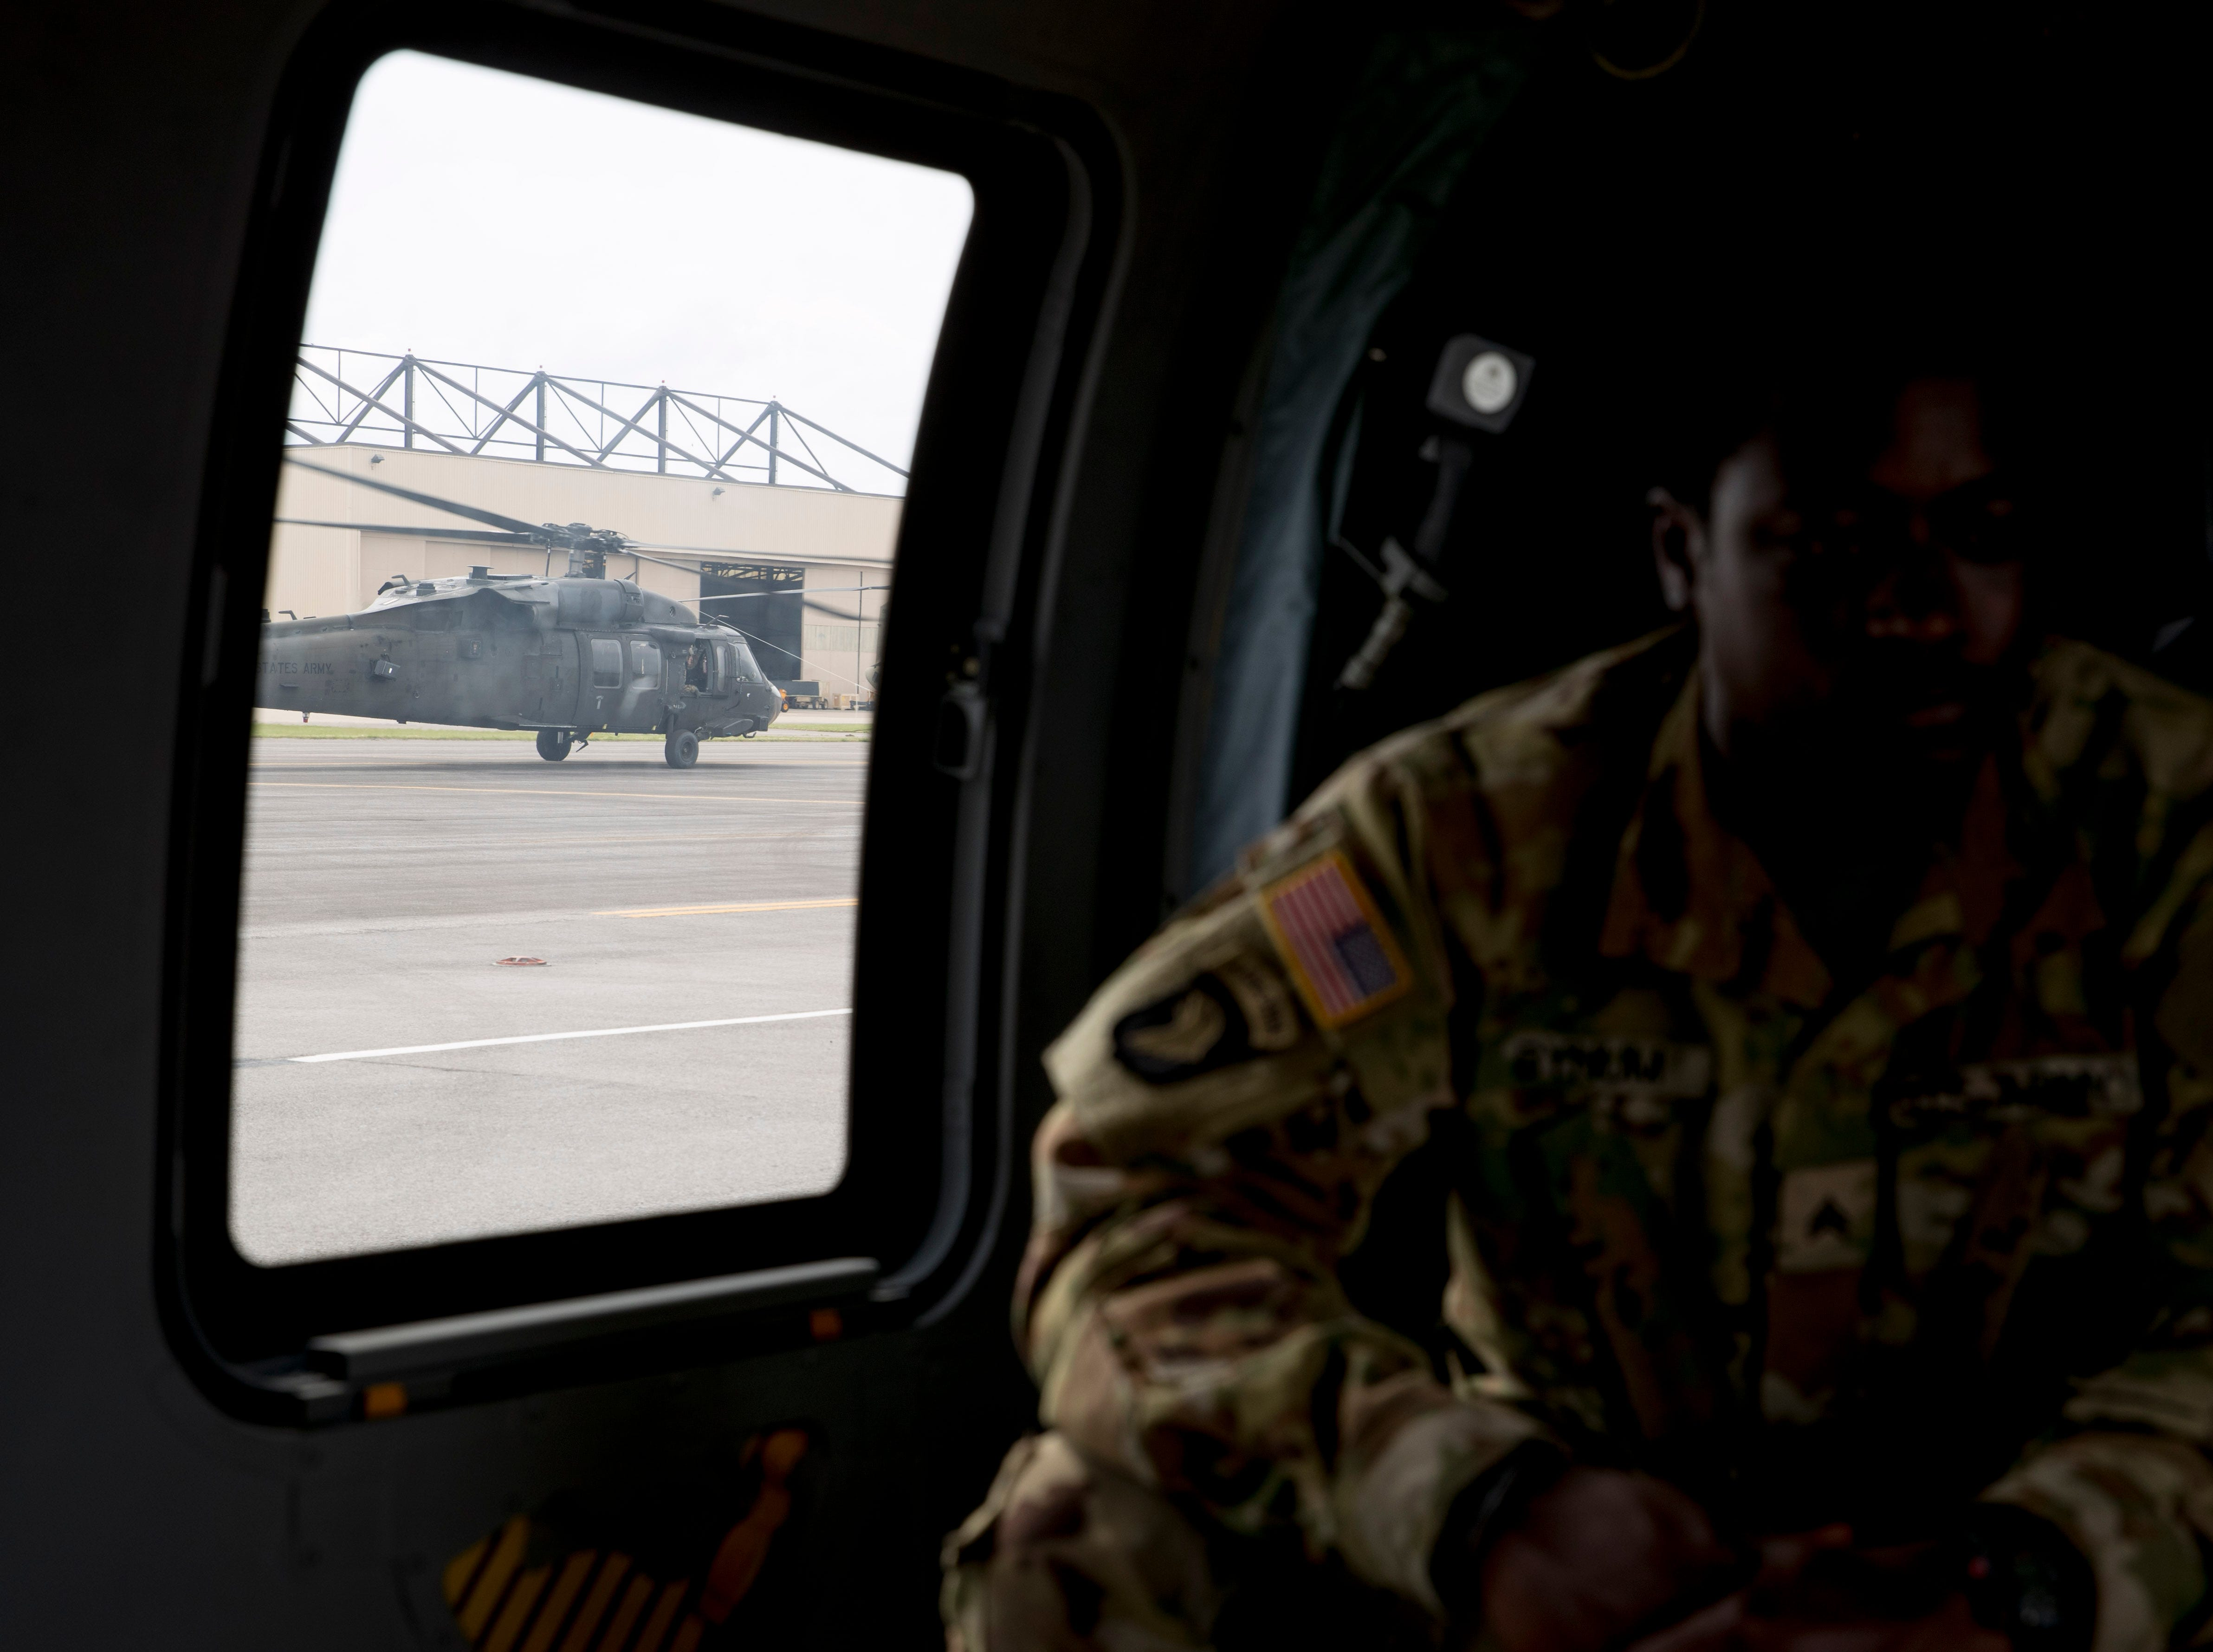 A Black Hawk helicopter returns from a test flight and moves down the runway at Campbell Army Airfield in Fort Campbell, KY., on Wednesday, May 1, 2019.